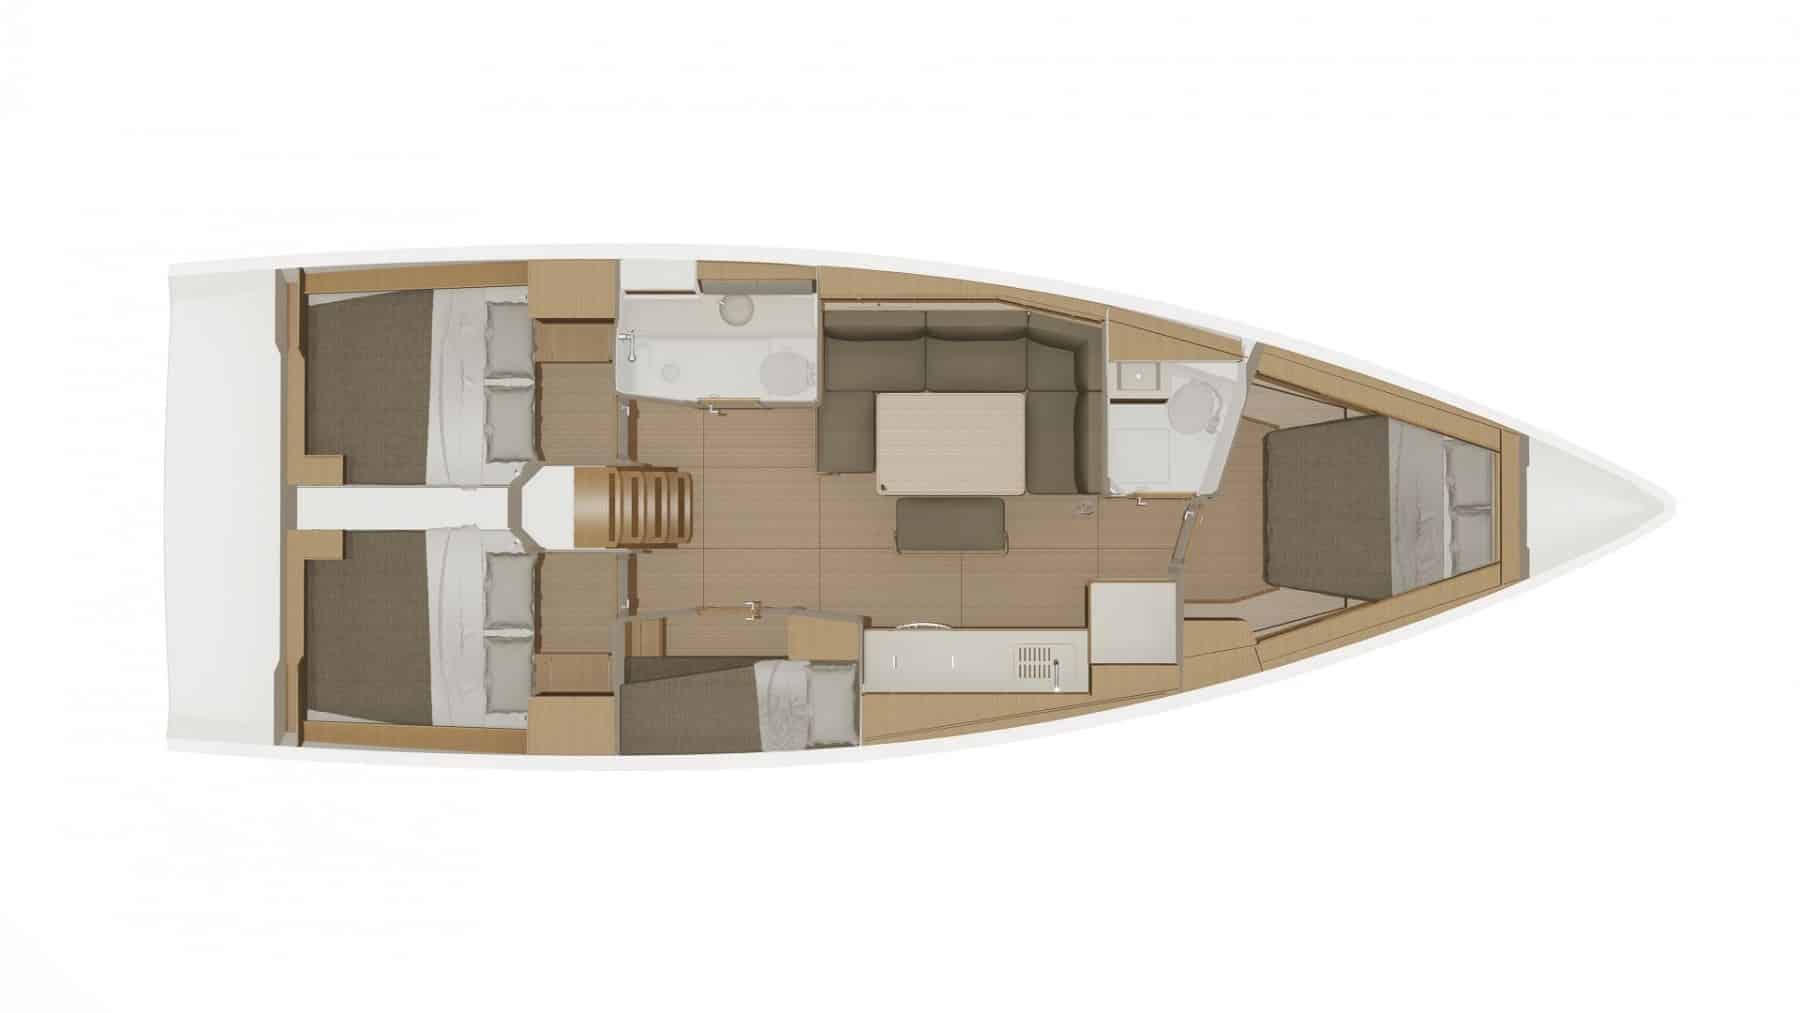 Animated layout from above of the interior of Dufour 430 Grand Large, with cabins, galley and saloon